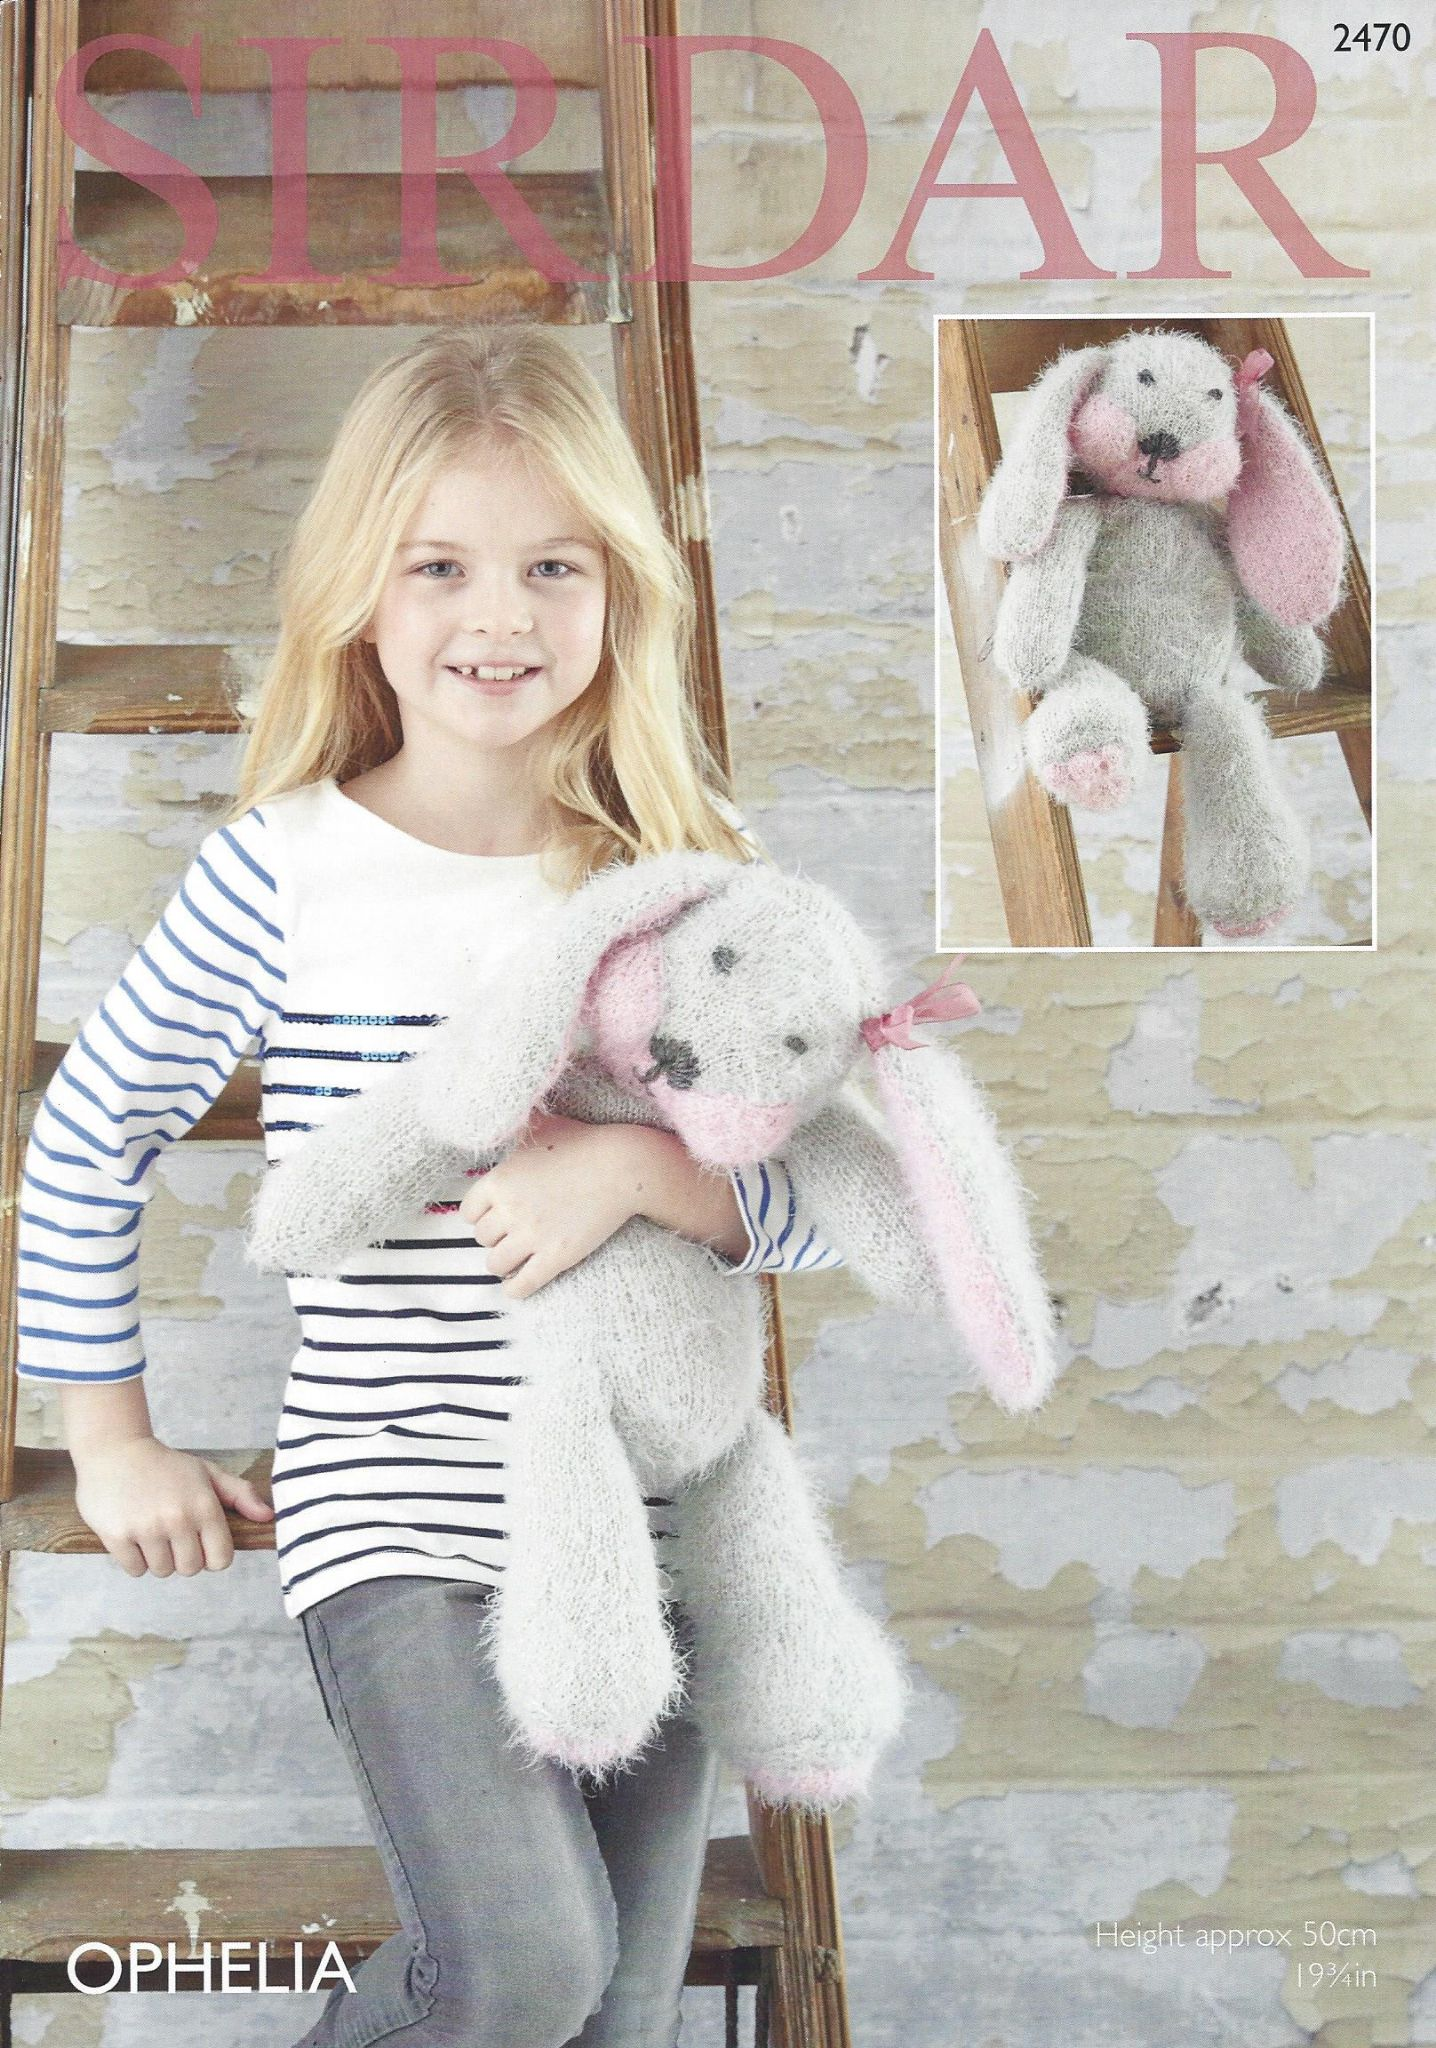 Sirdar Toy Knitting Patterns : Sirdar Ophelia - 2470 Rabbit Toy Knitting Pattern